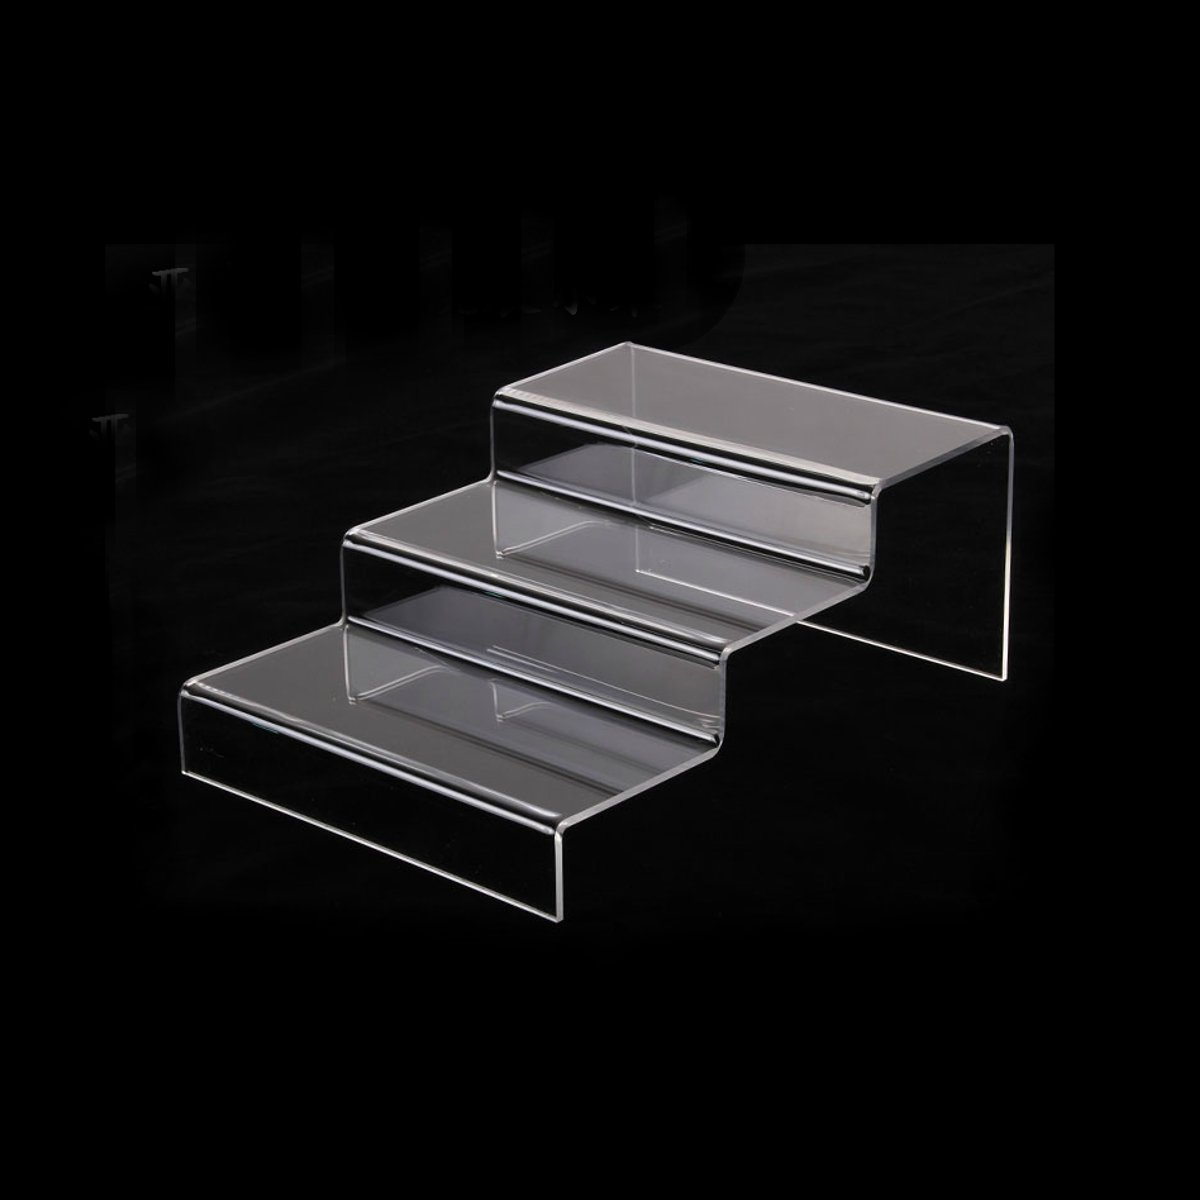 Acrylic Retail Riser Counter Shoes Jewellery Display Stands Plinth Jewelry Ladder Shelf Double Rack Organizers 3 Step Tier